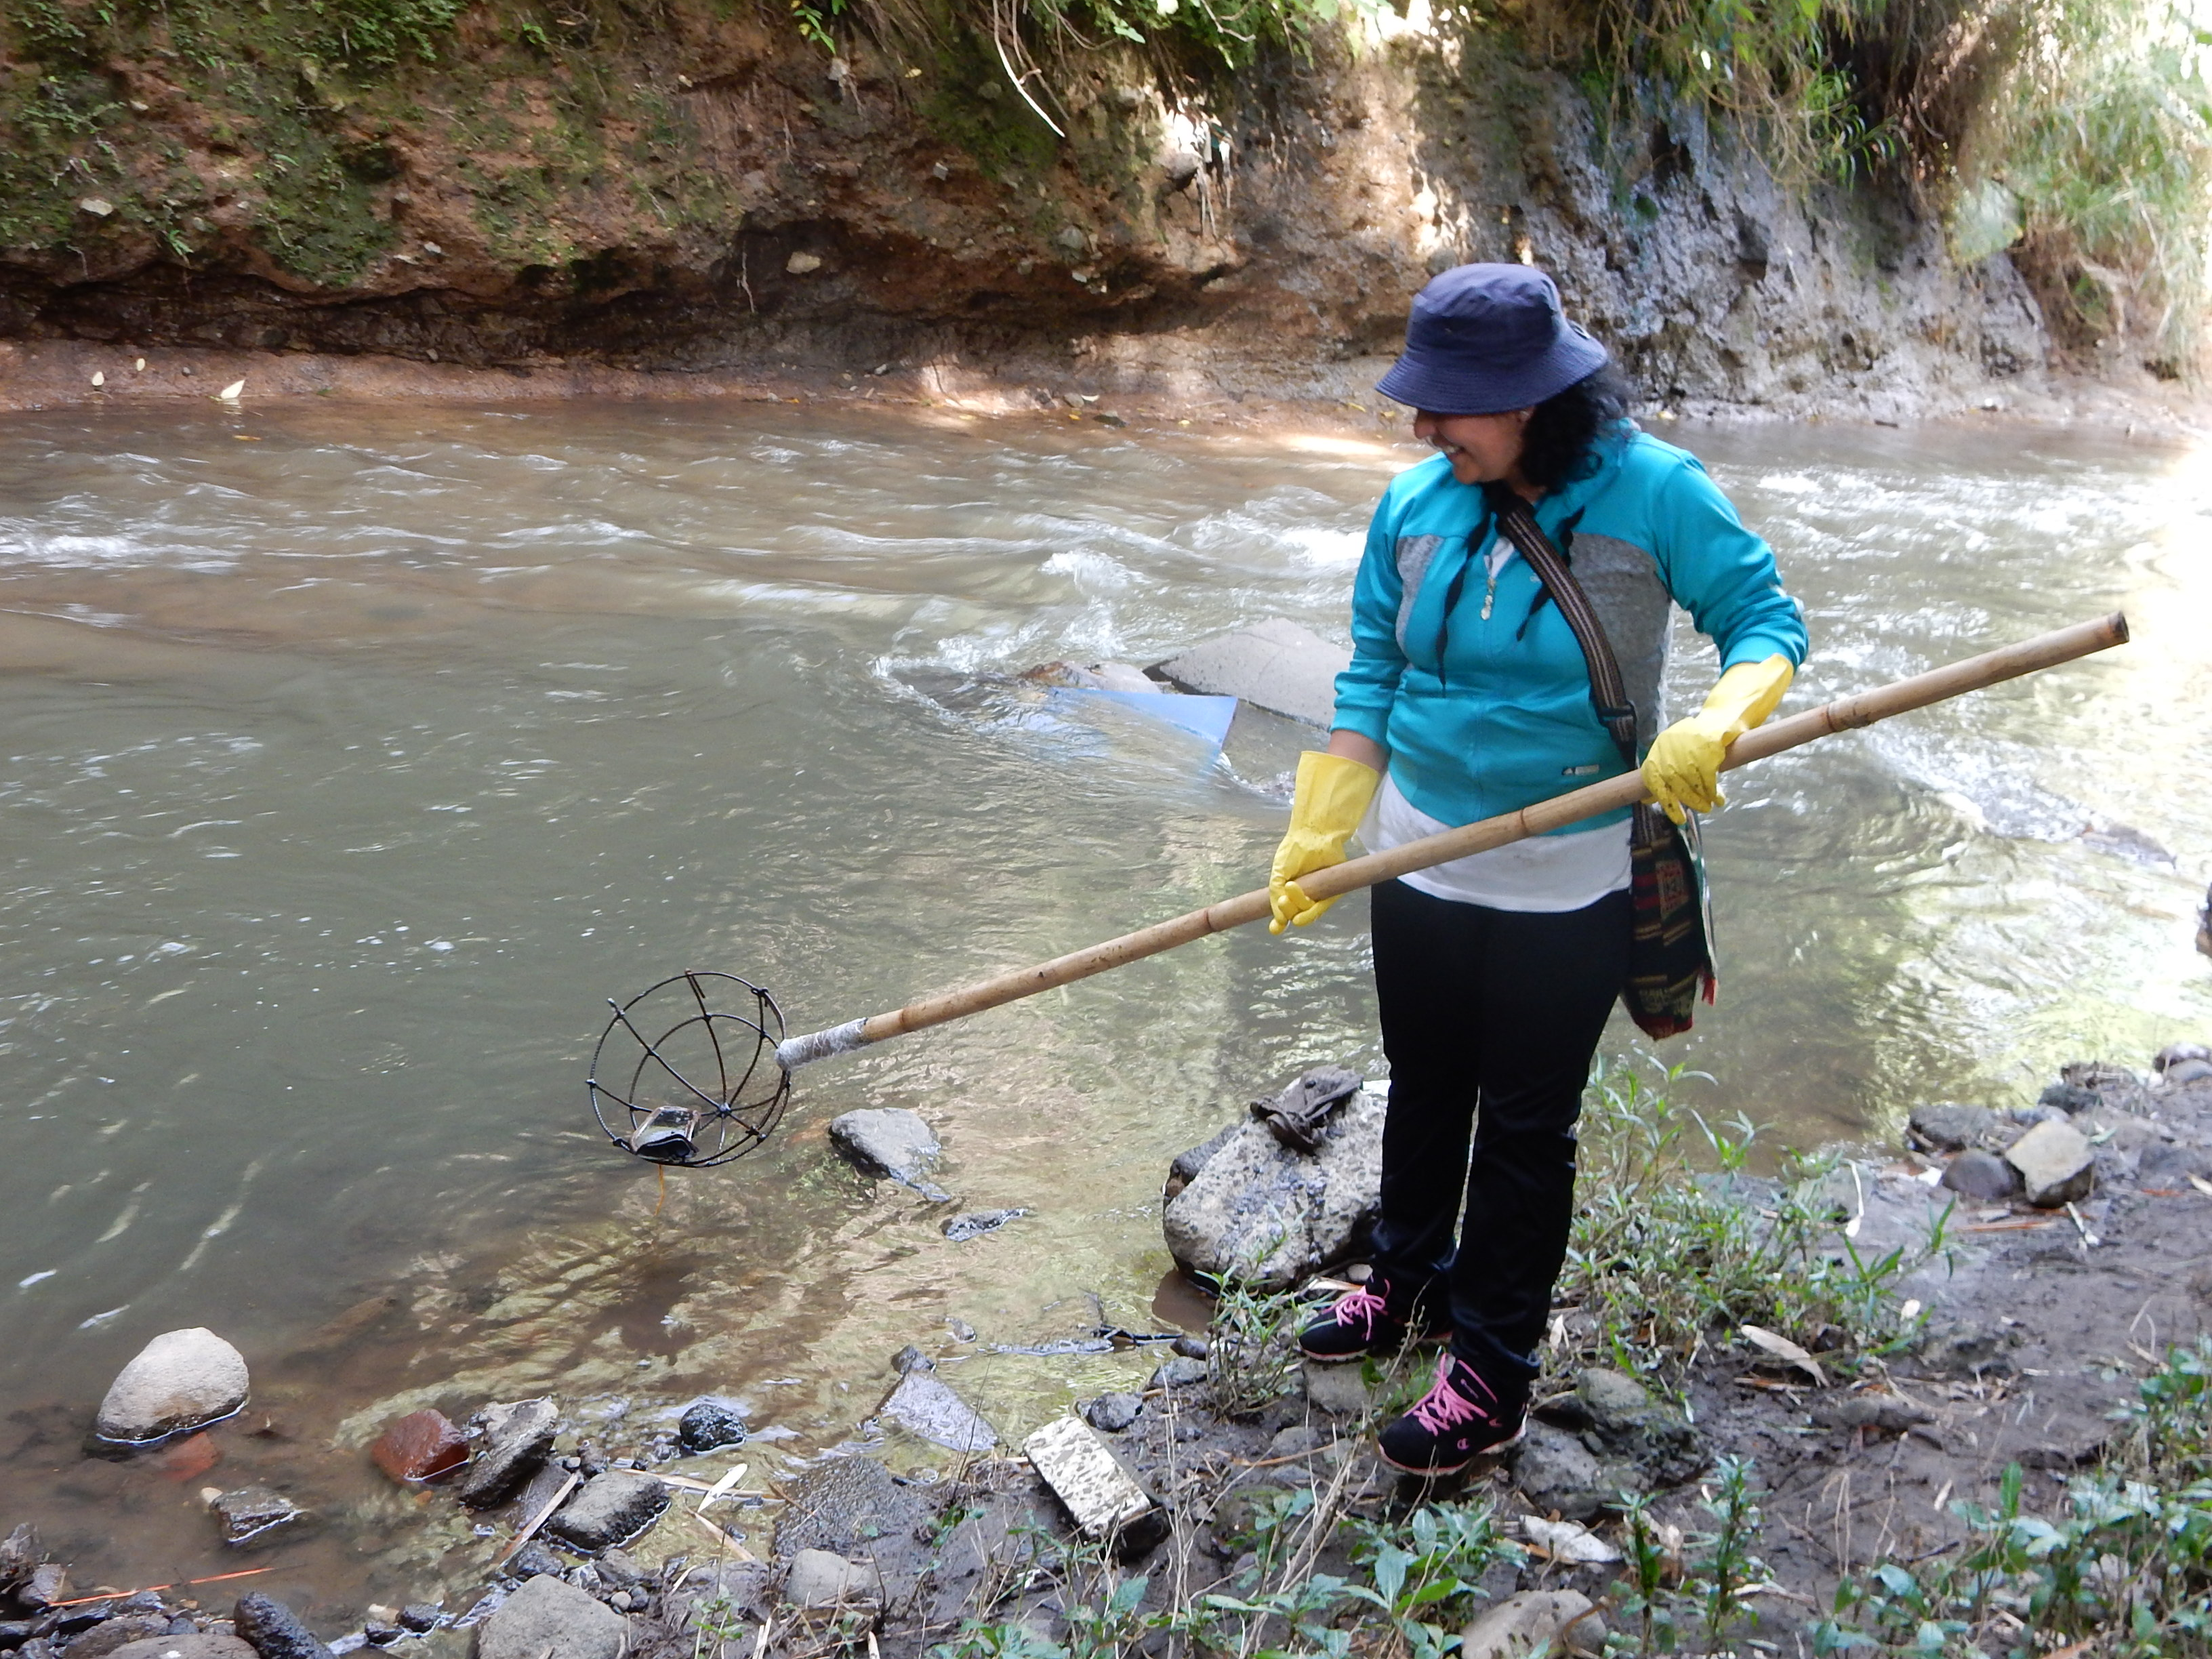 UBL student Sarvia Gomez fishing for trash in the Torres River